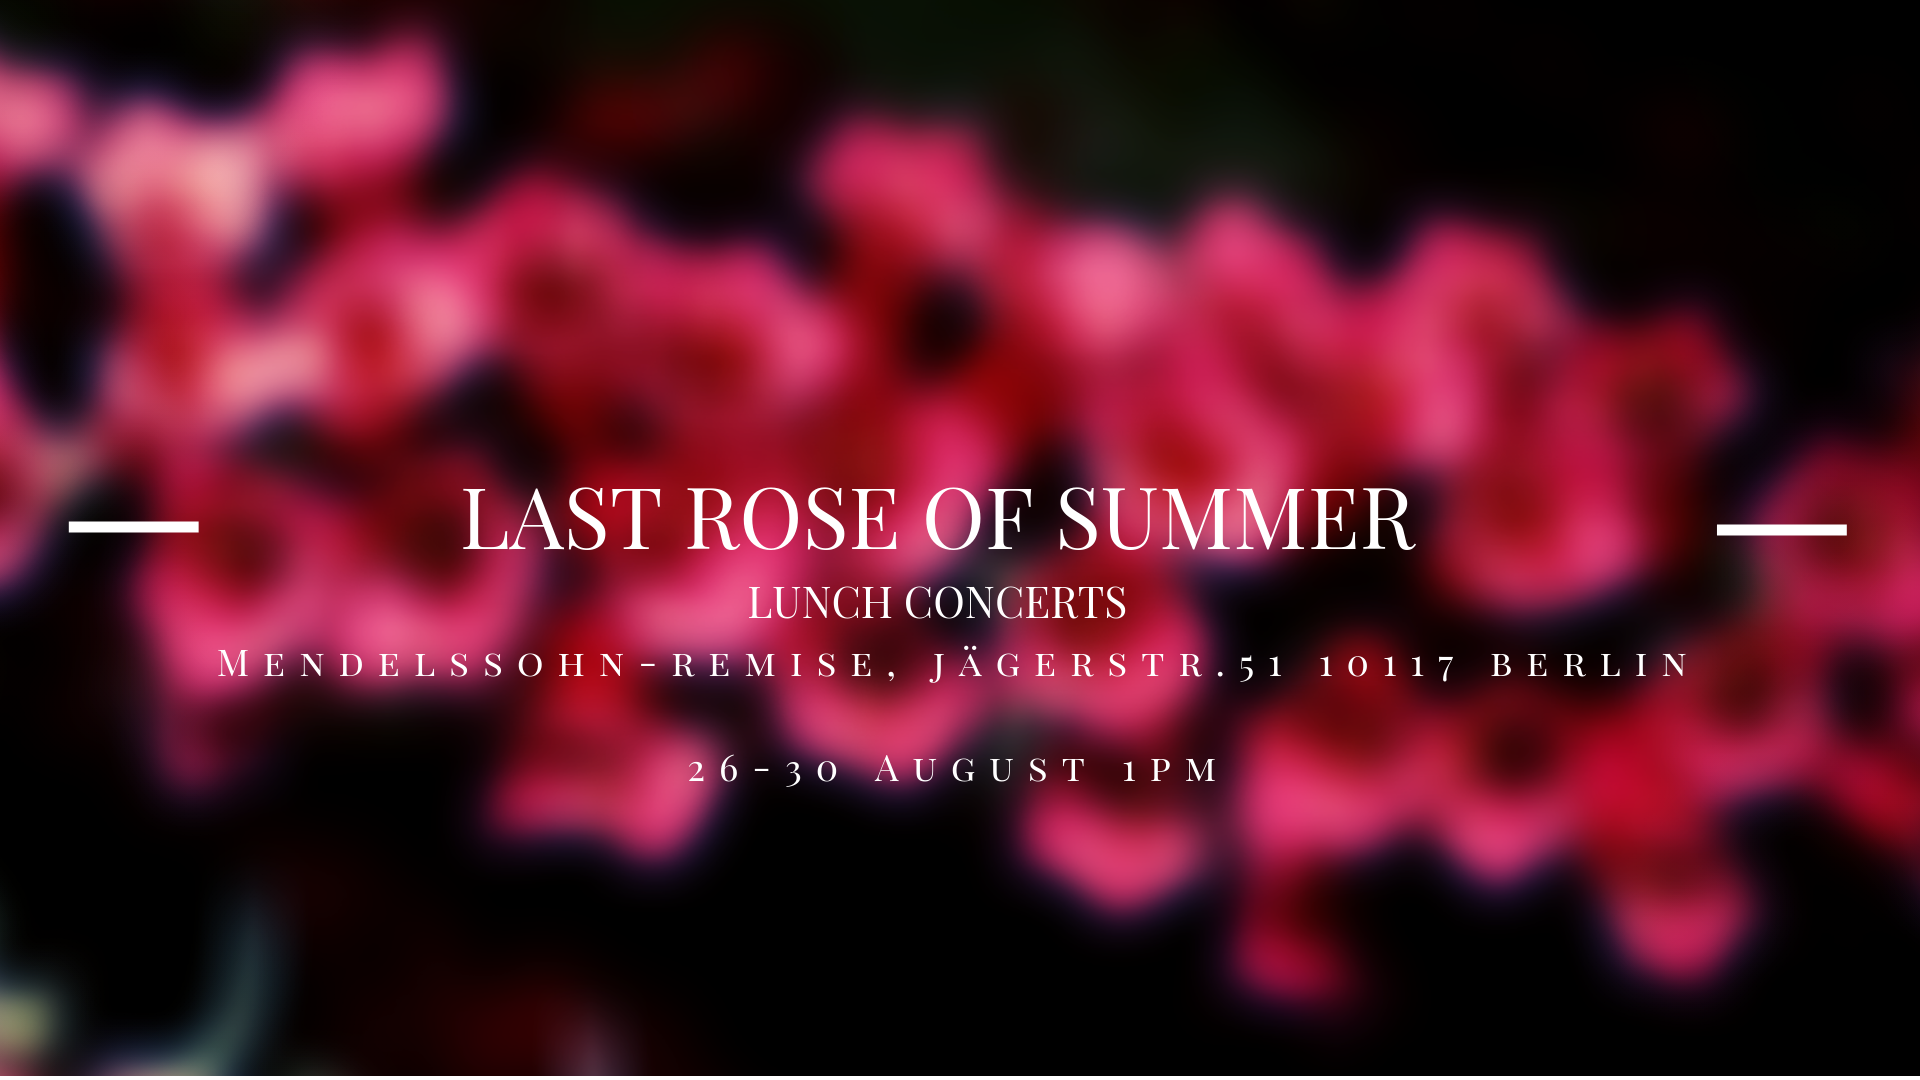 Last Rose of Summer - Lunch Concert Festival